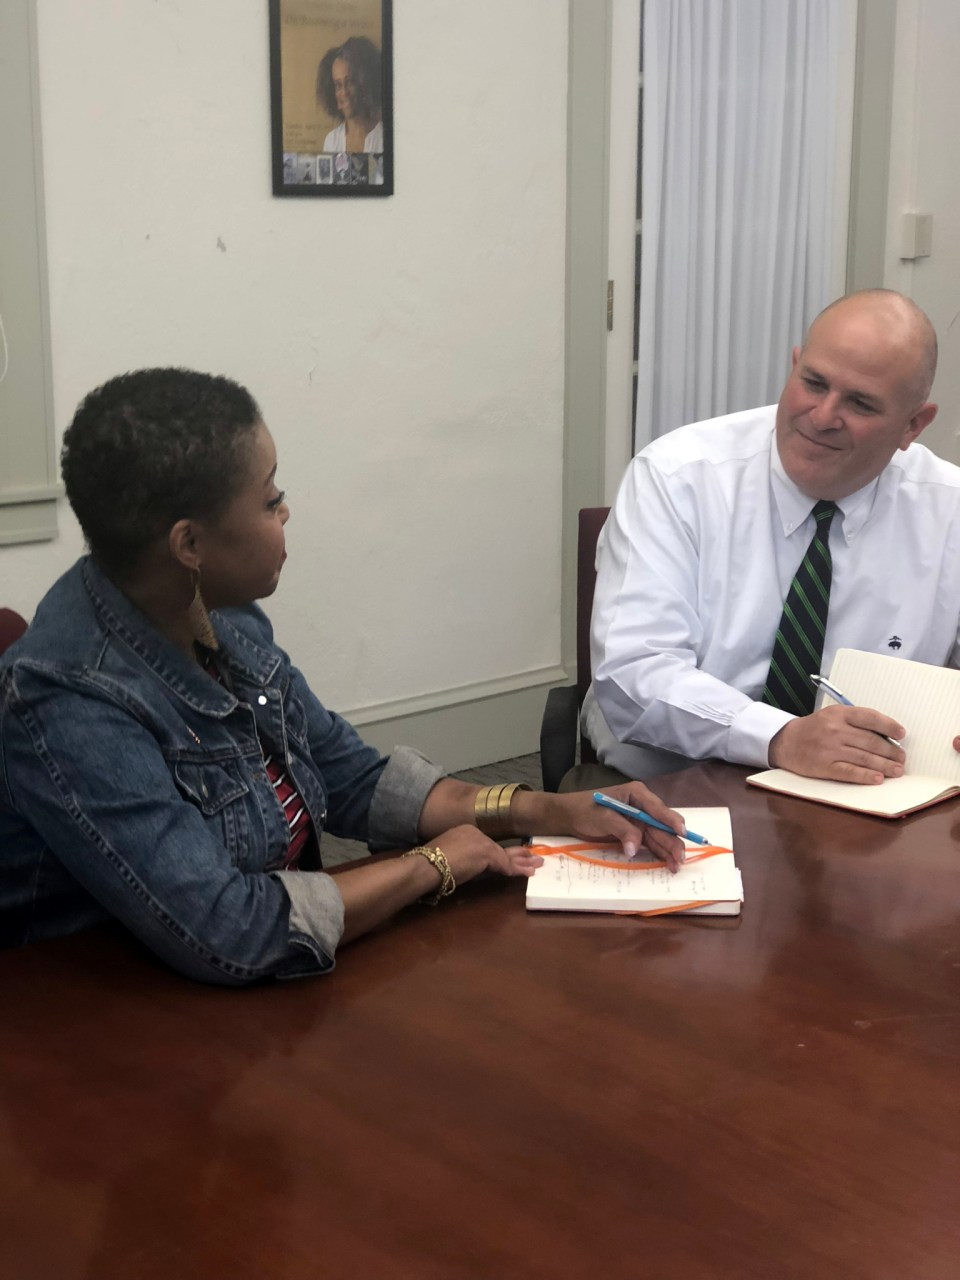 Rachel Edens, an assistant dean, chats with Dartmouth's financial aid director G. Dino Koff.